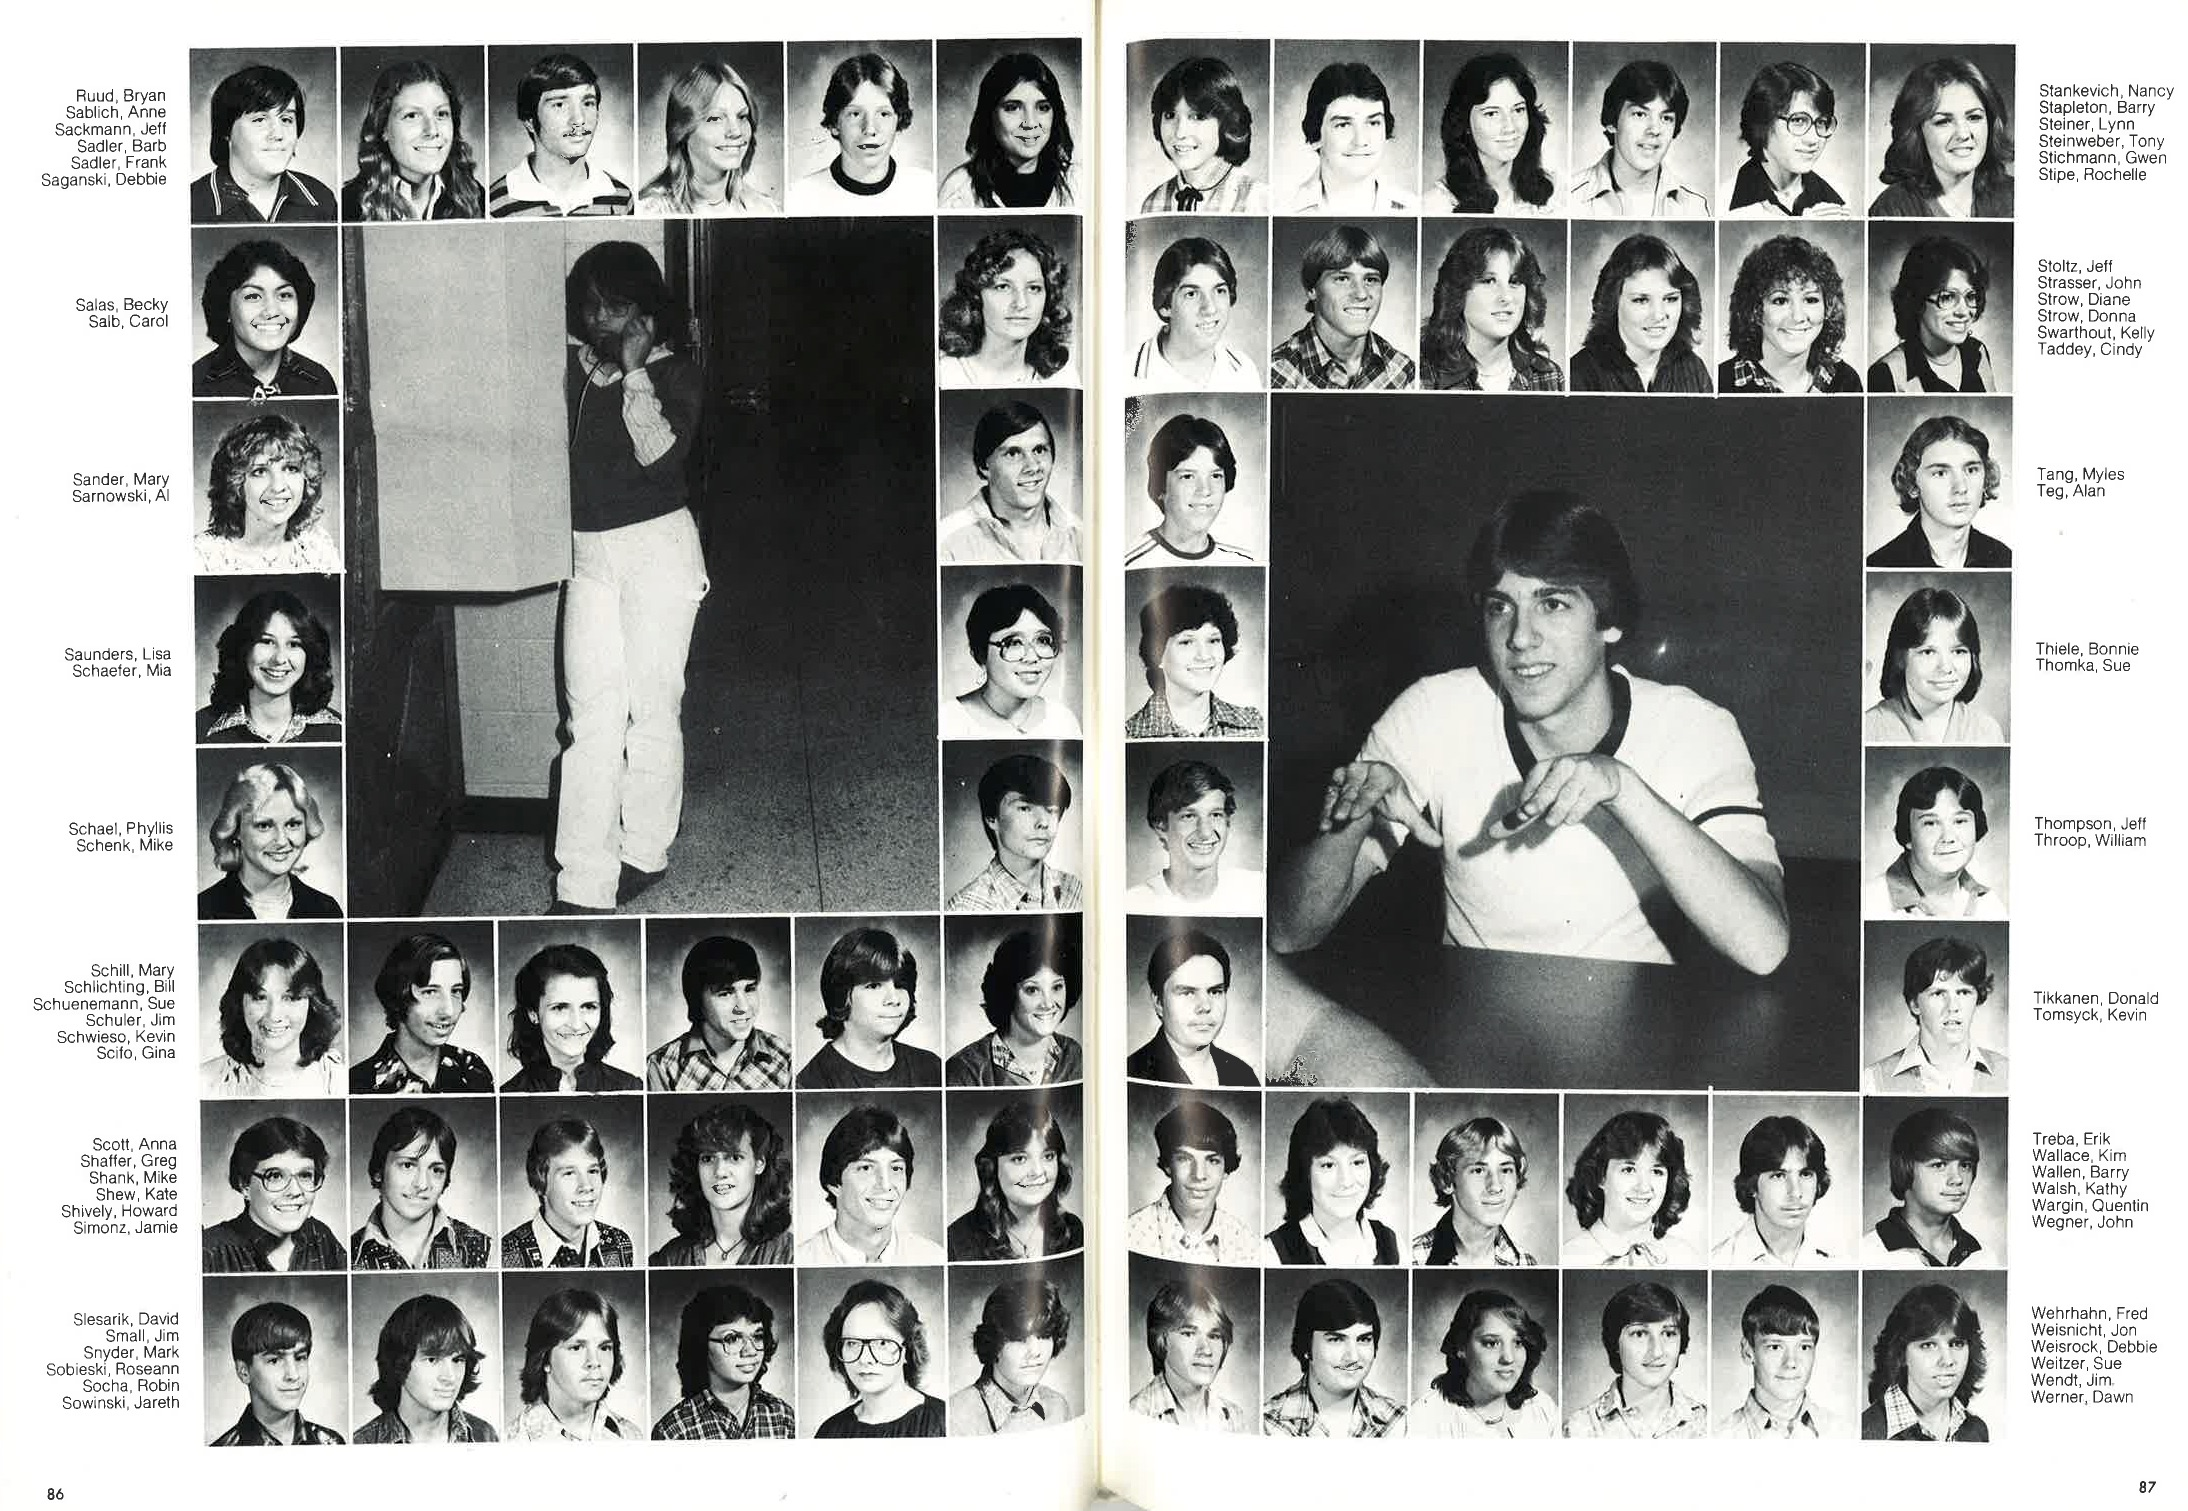 1980_Yearbook_86.jpg